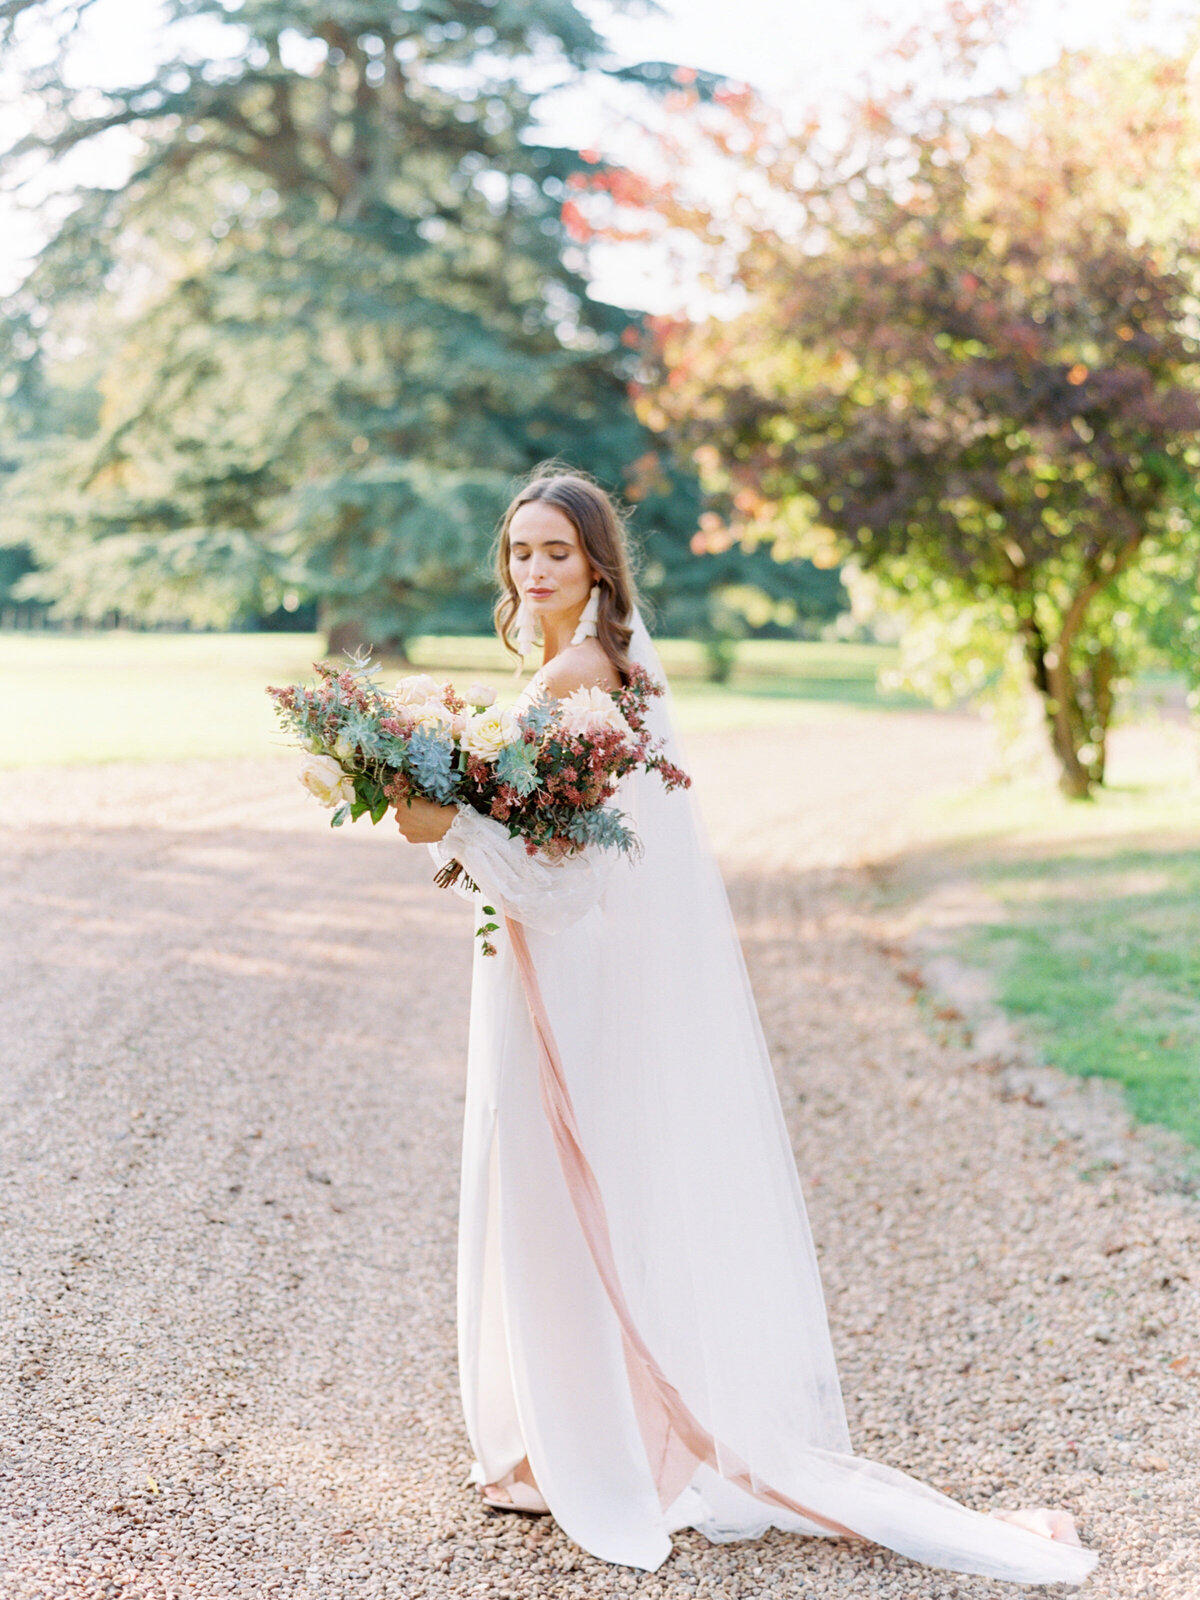 chateau-bouthonvilliers-wedding-paris-wedding-photographer-mackenzie-reiter-photography-59